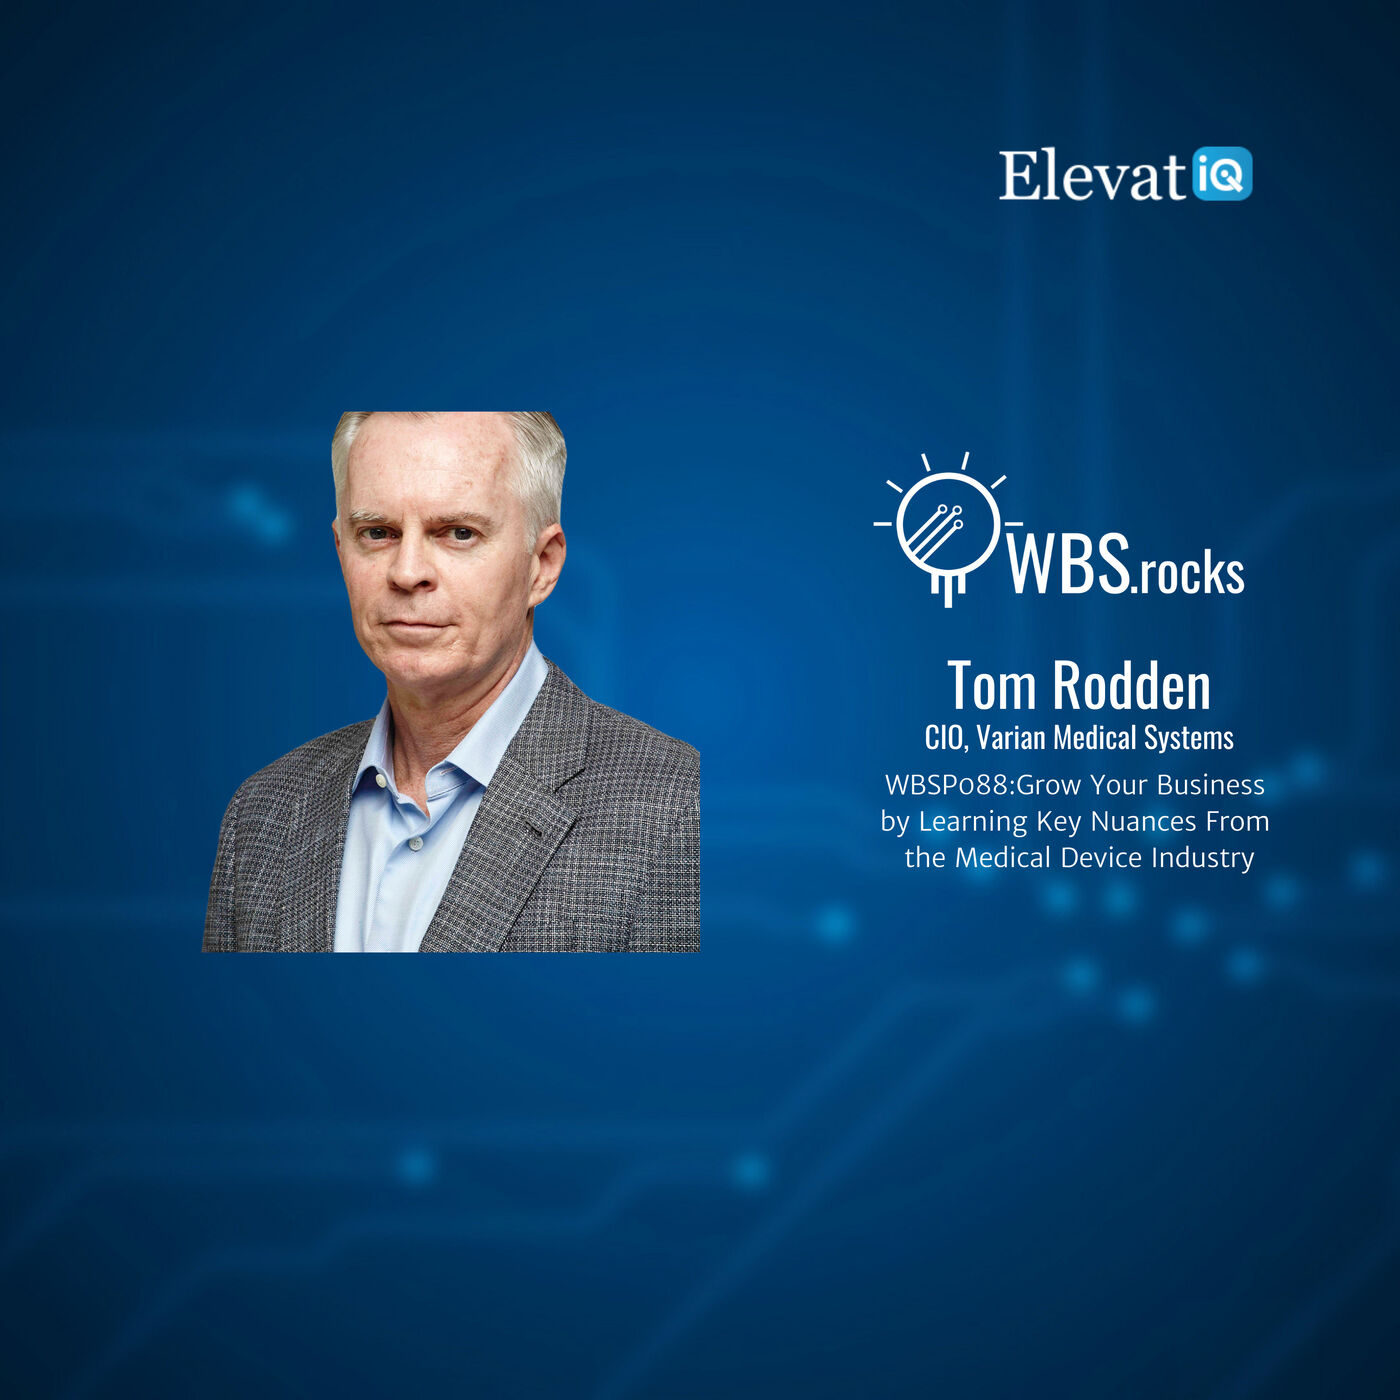 WBSP088:Grow Your Business by Learning Key Nuances From the Medical Device Industry w/ Tom Rodden